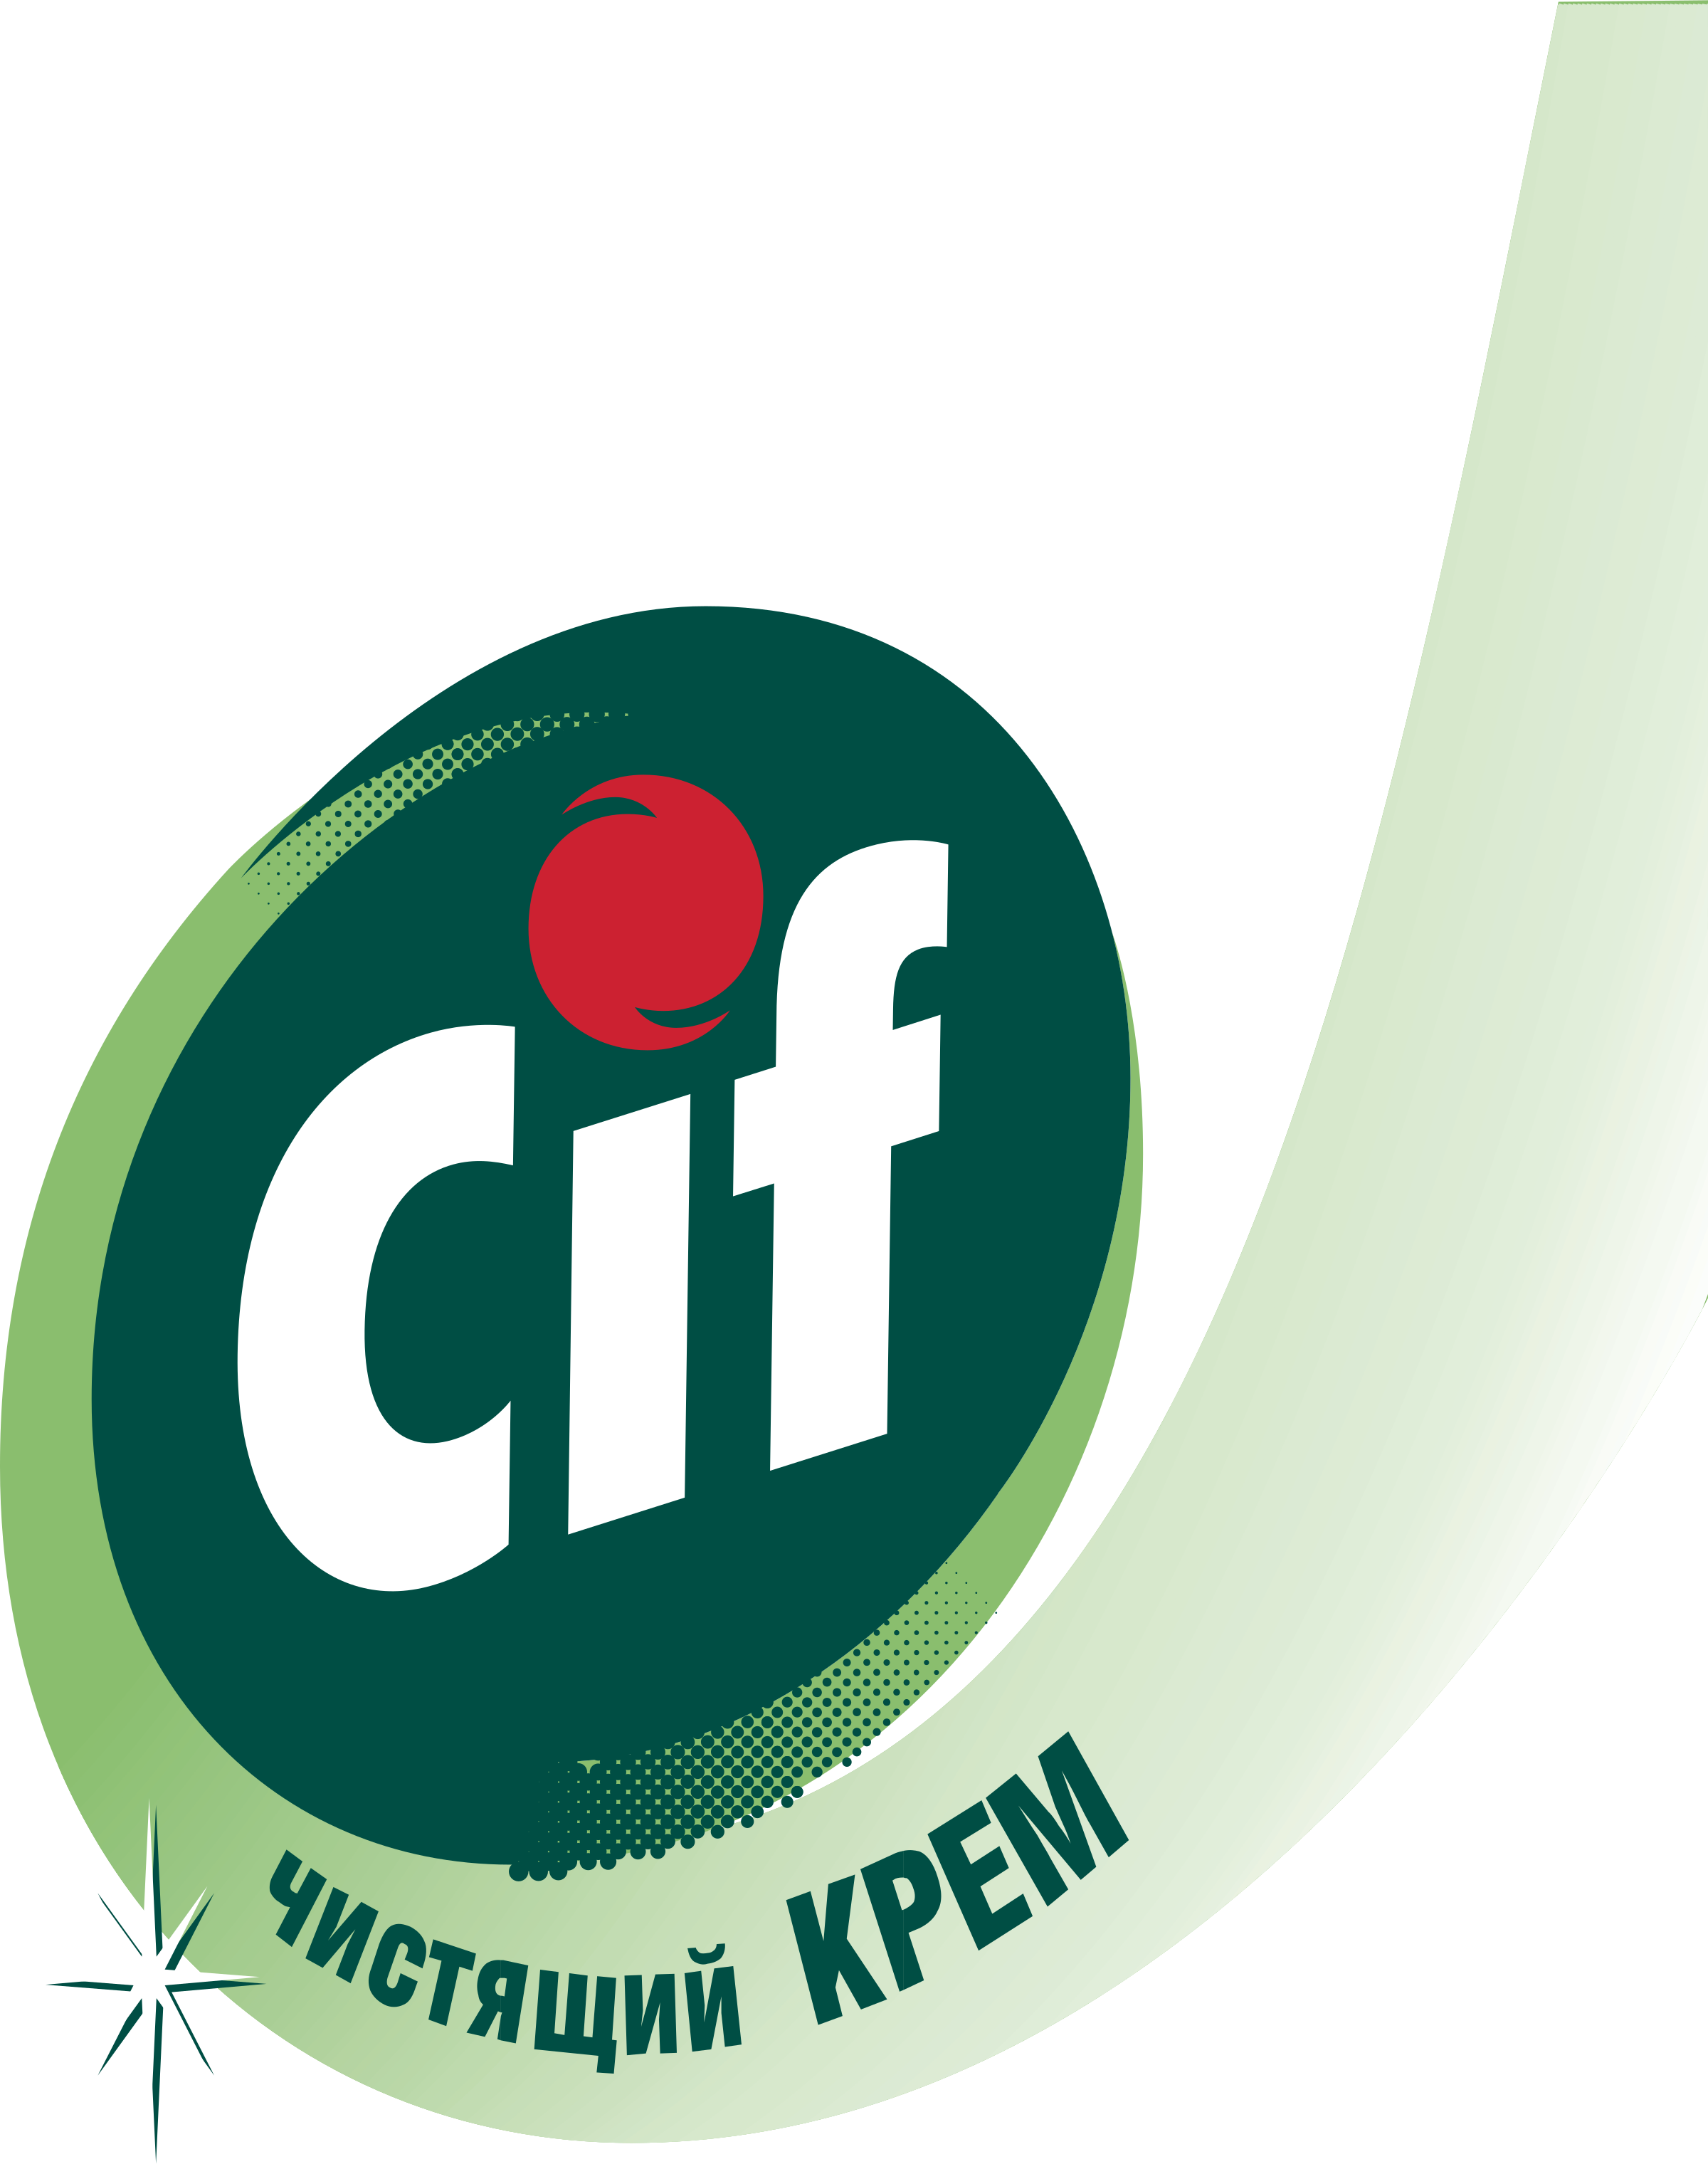 Cif Logo PNG Transparent & SVG Vector.